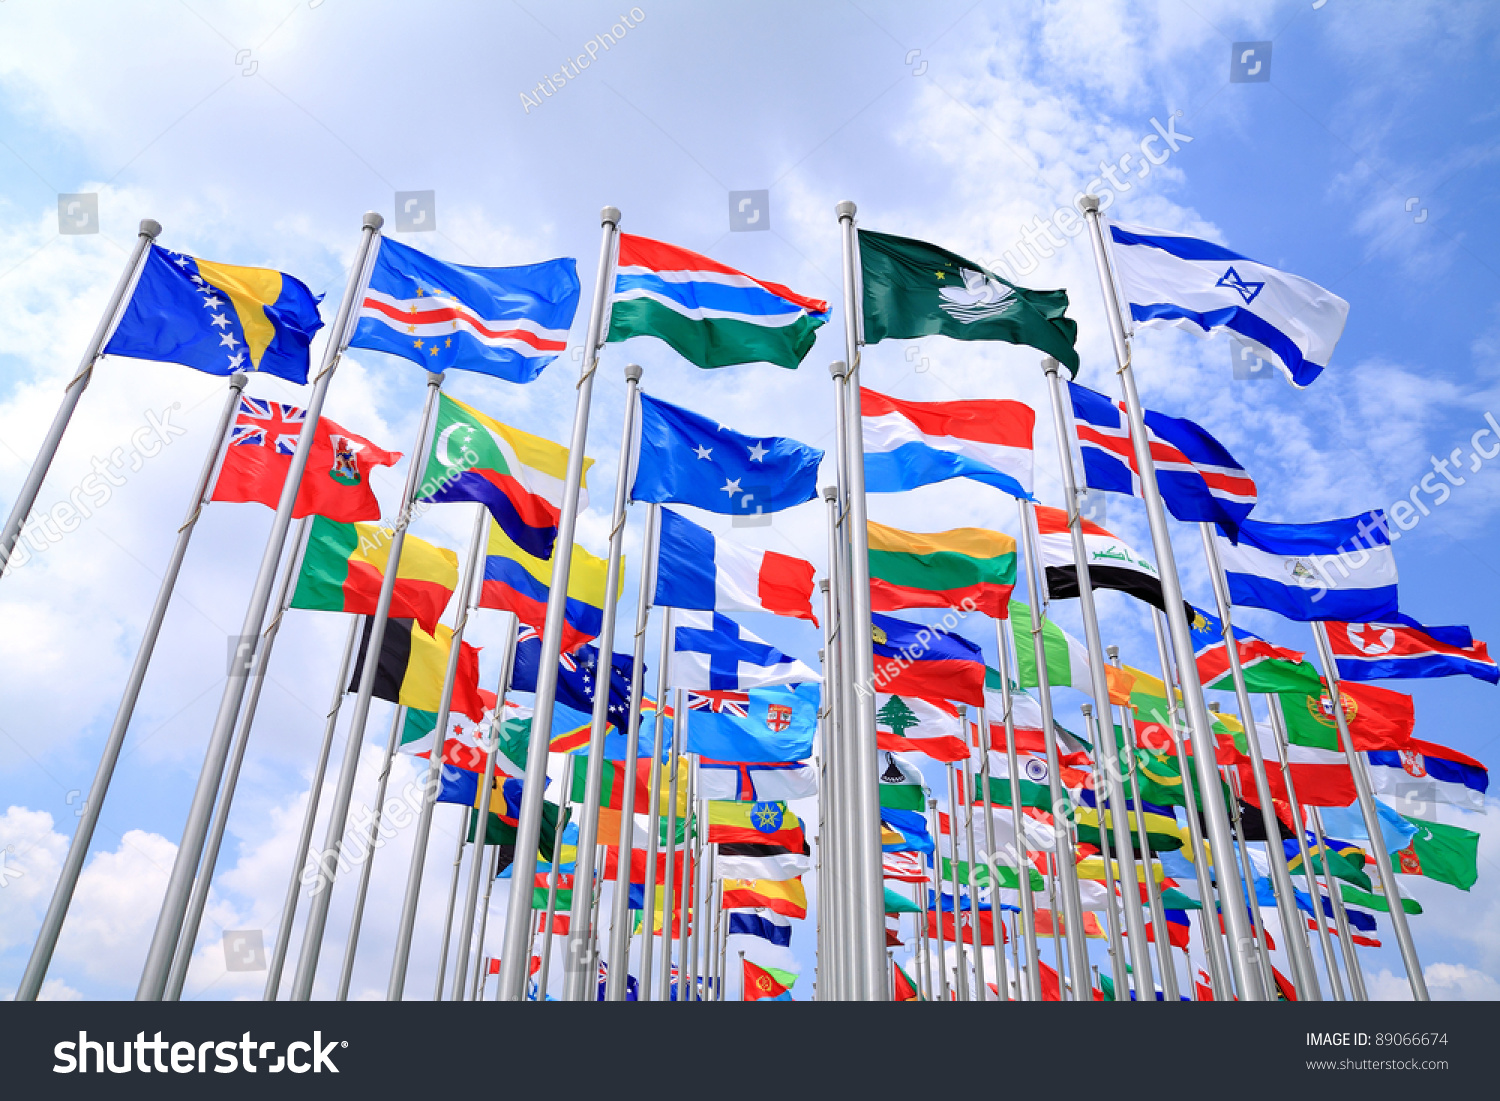 World Flags Stock Photo 89066674 - Shutterstock